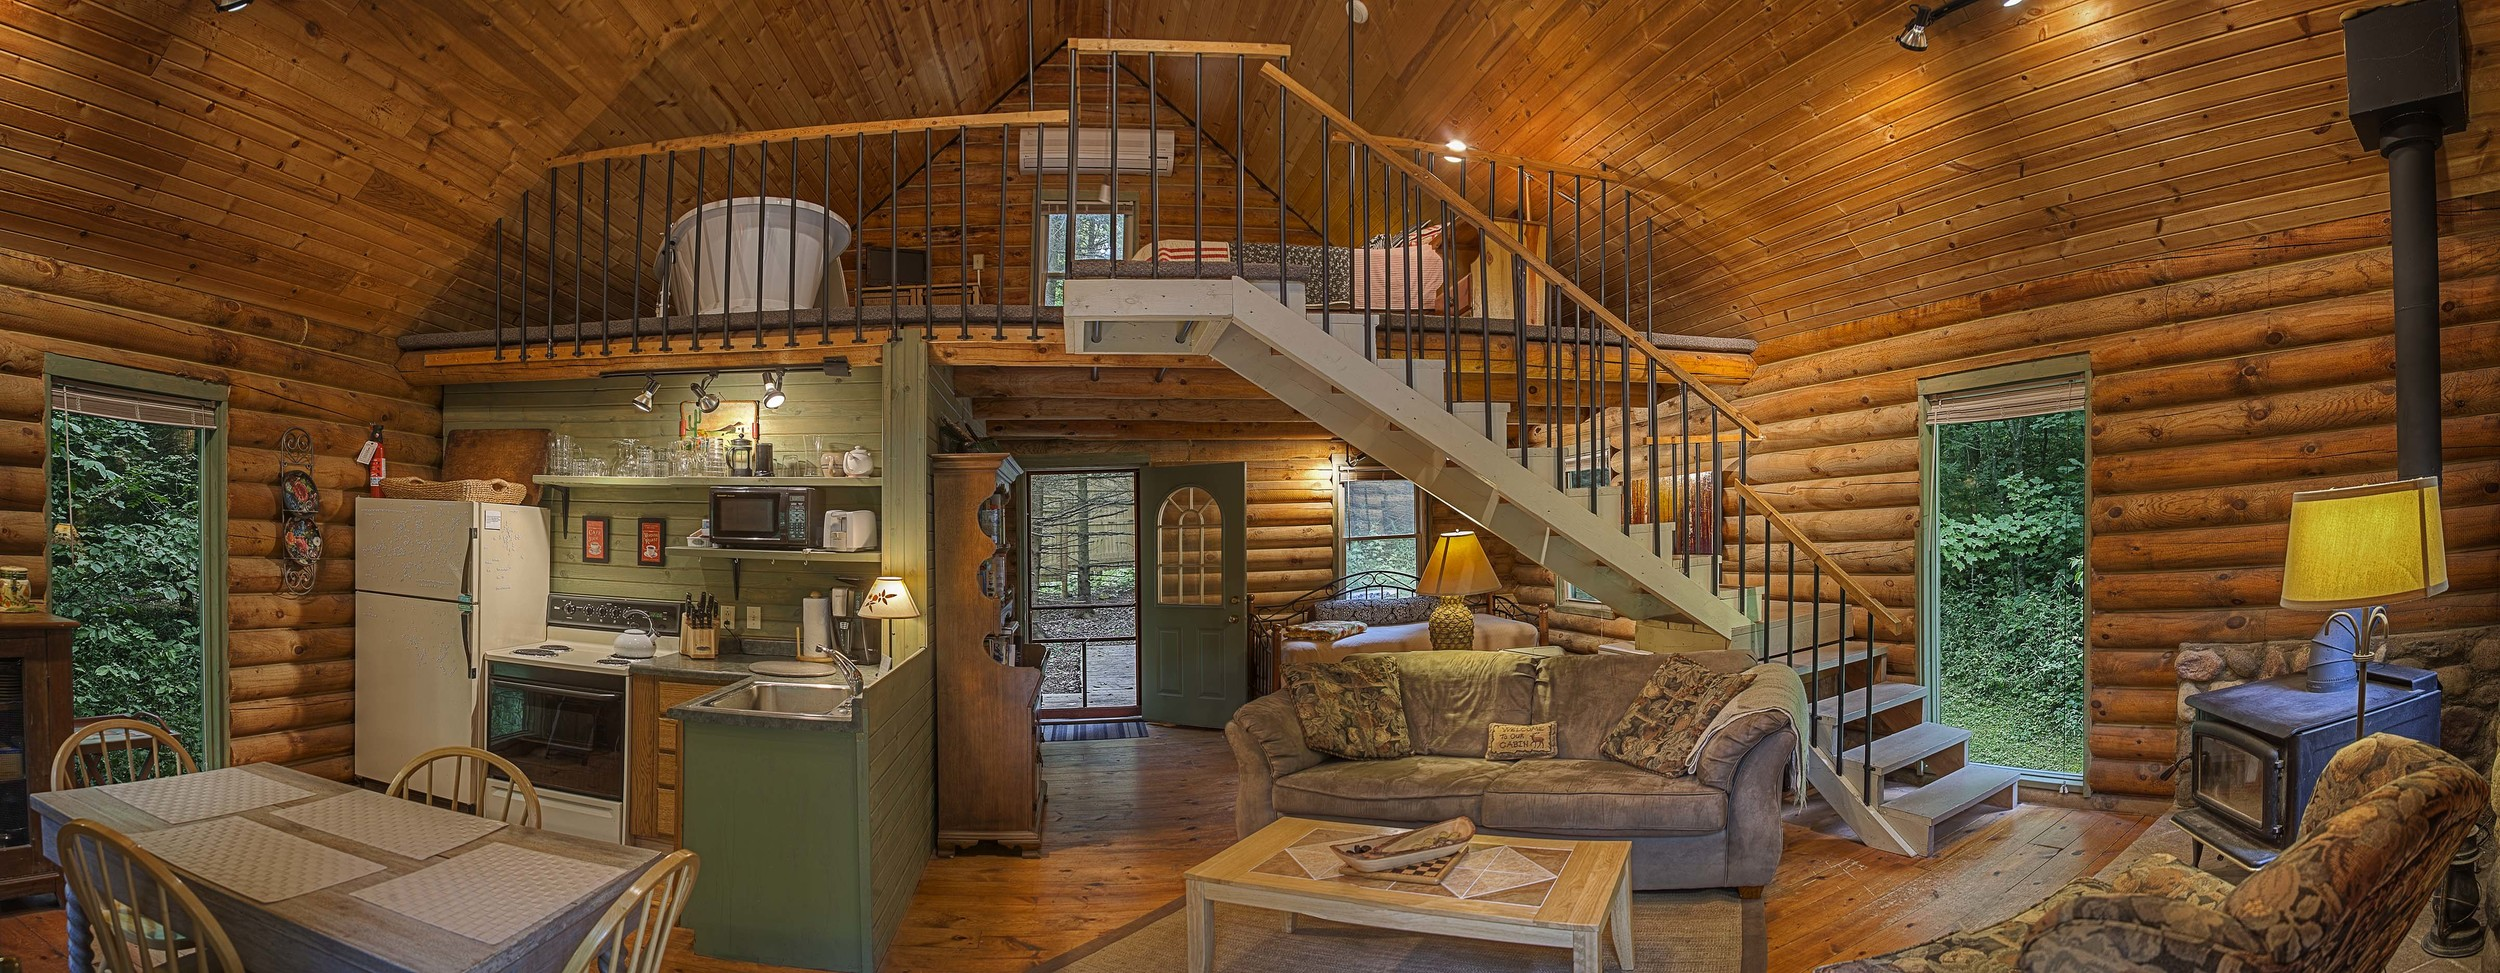 Dream House In Woods Amazing Cabins Adorable Home